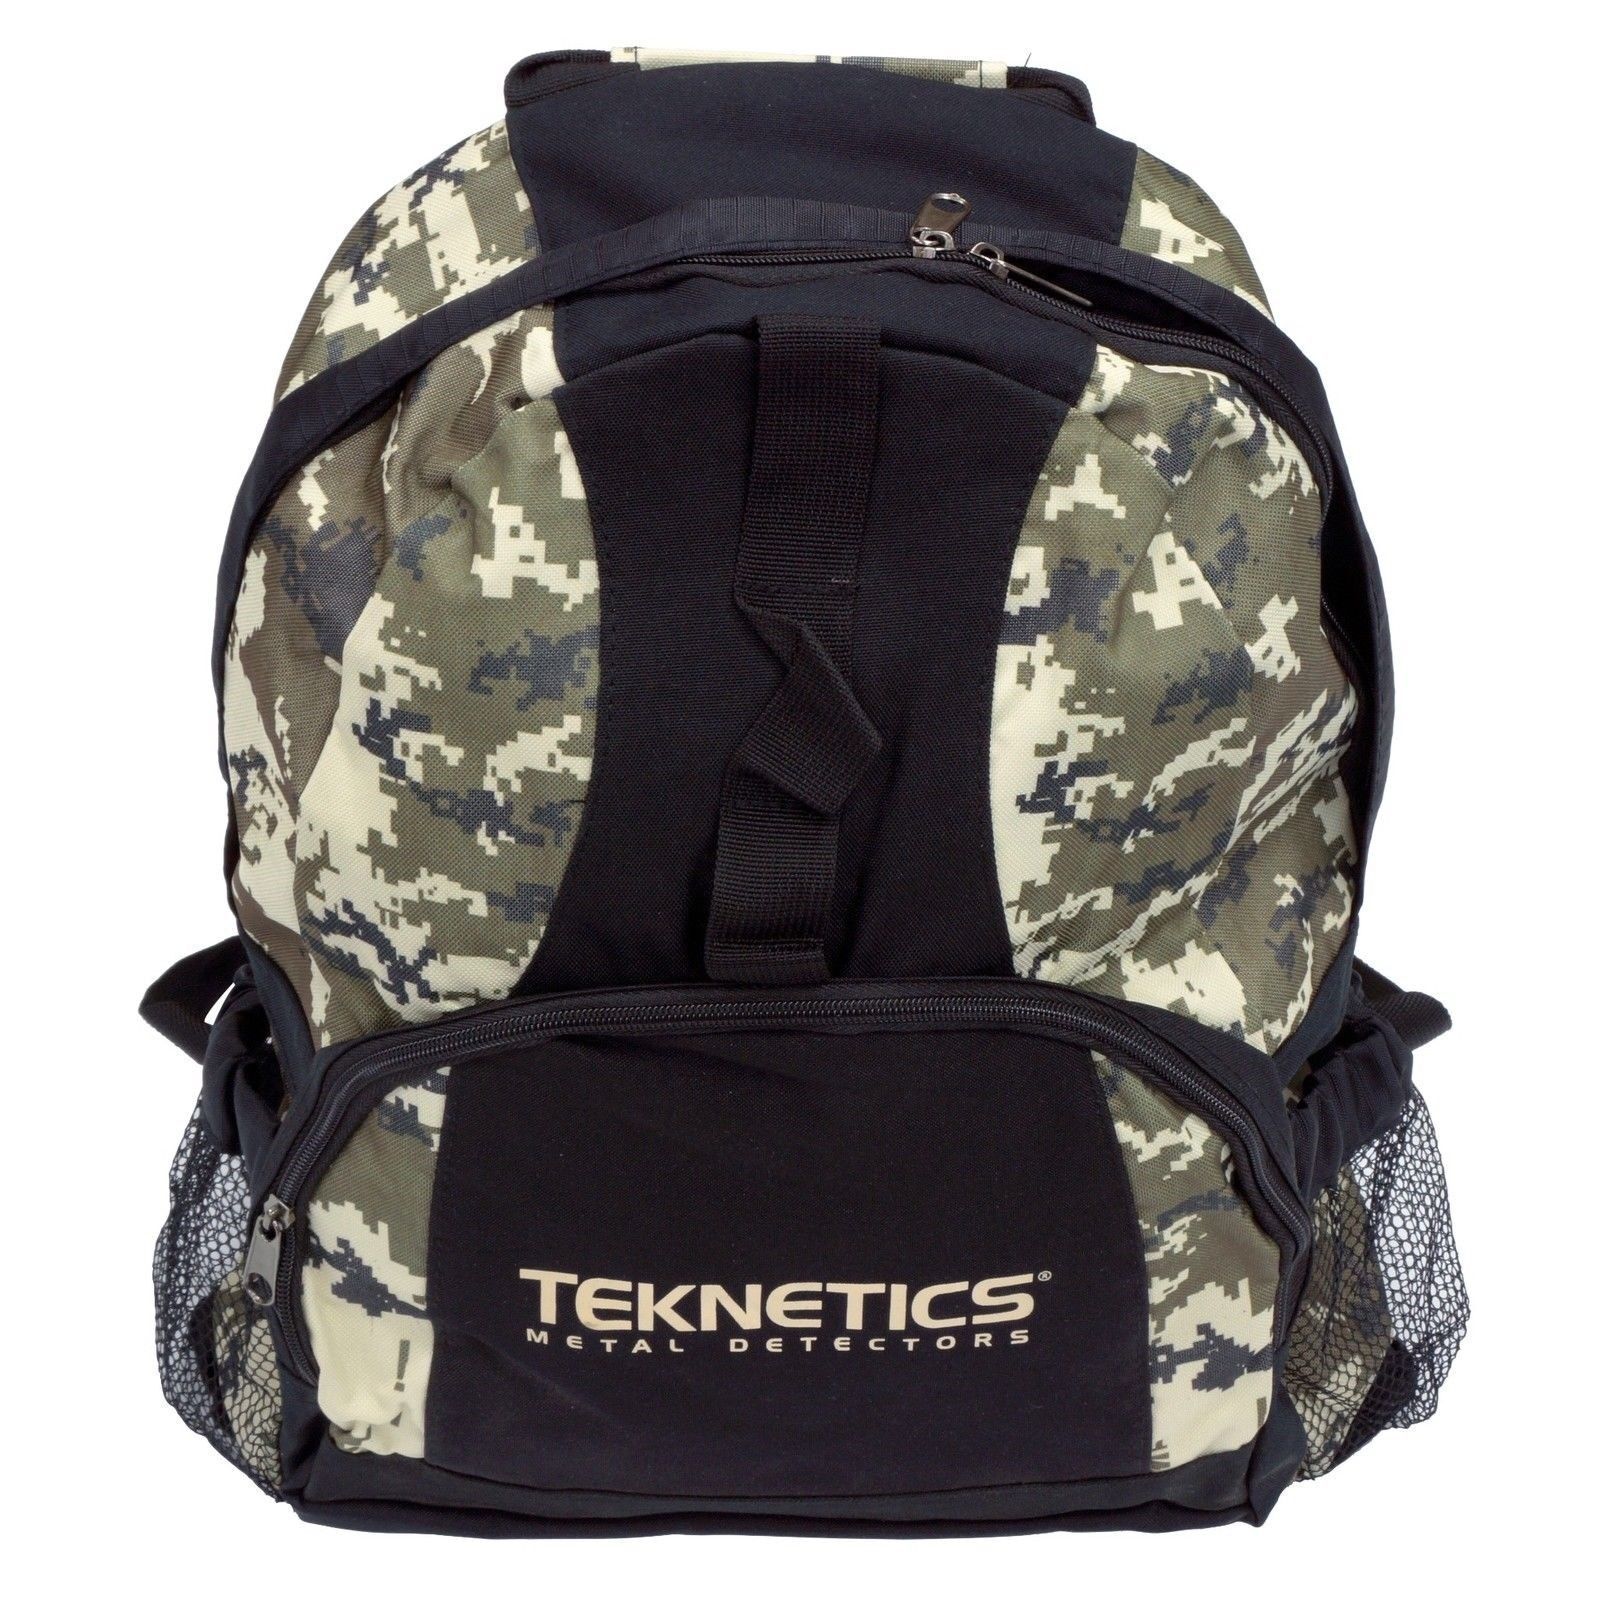 Teknetics Digital Camouflage Backpack Metal Detecting Daypack TKCBACKPACK